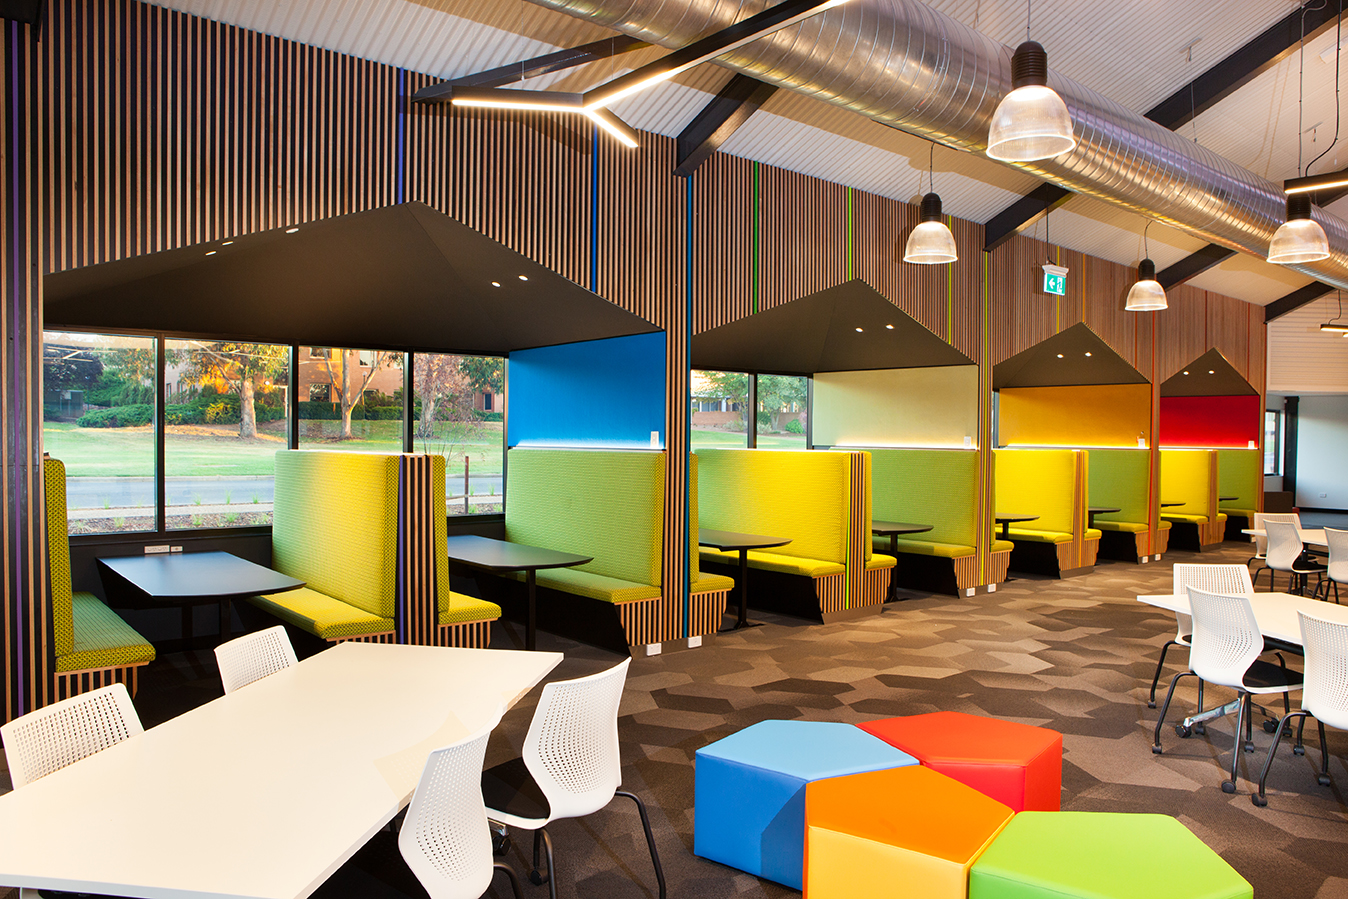 Charles Sturt University Flexible Study Area